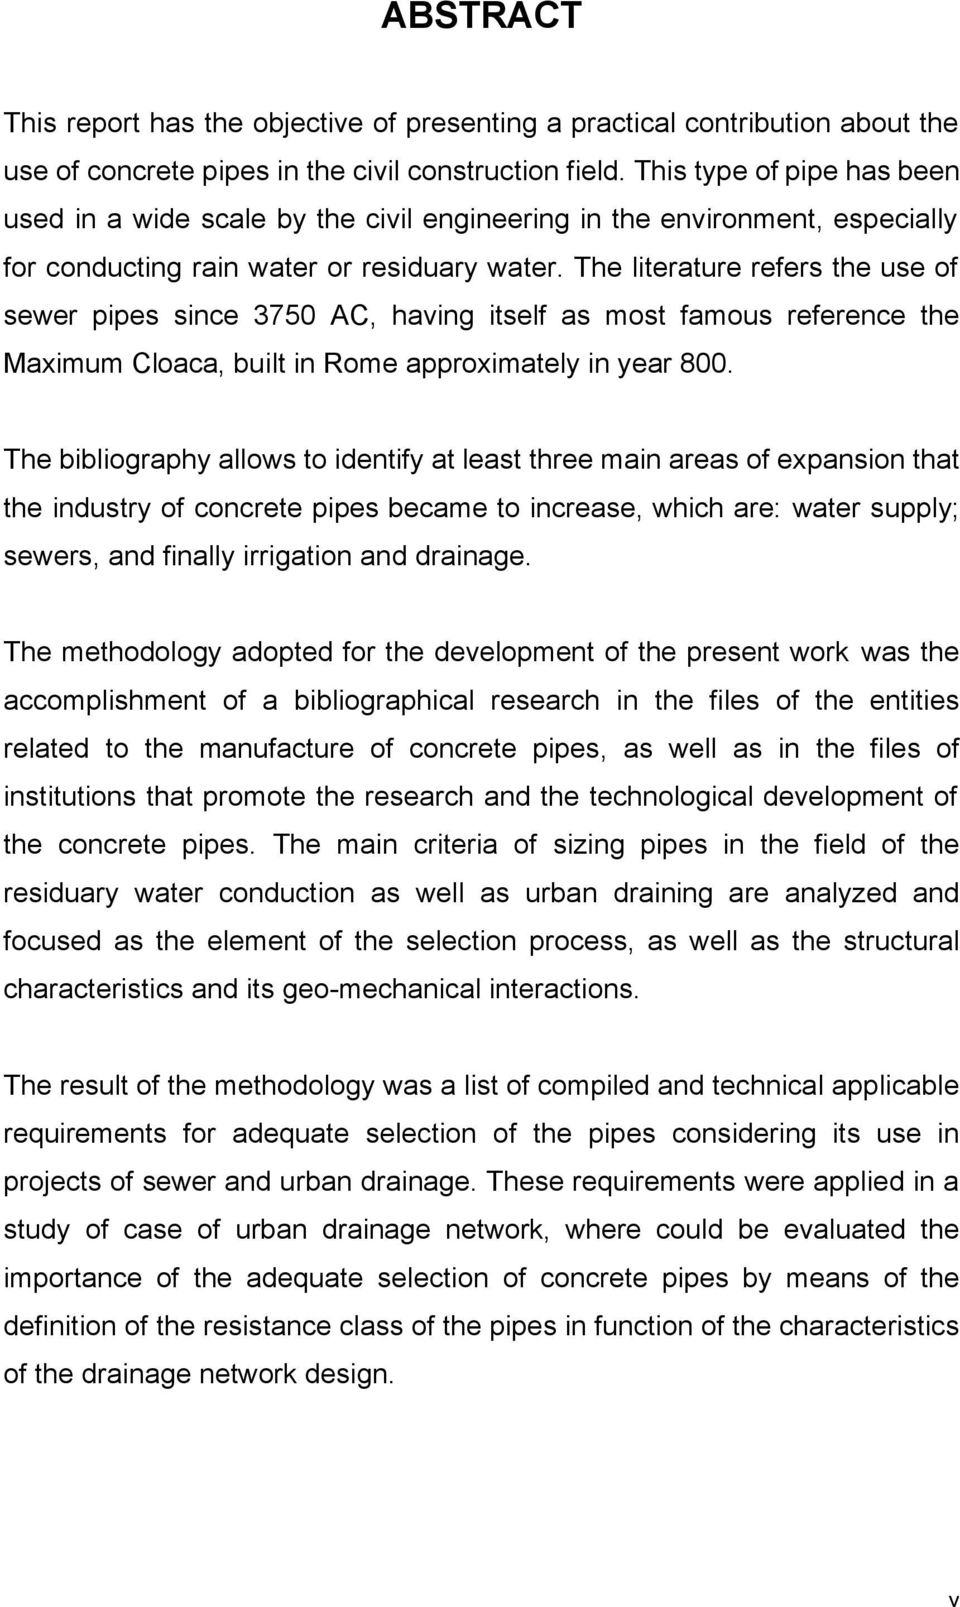 The literature refers the use of sewer pipes since 3750 AC, having itself as most famous reference the Maximum Cloaca, built in Rome approximately in year 800.